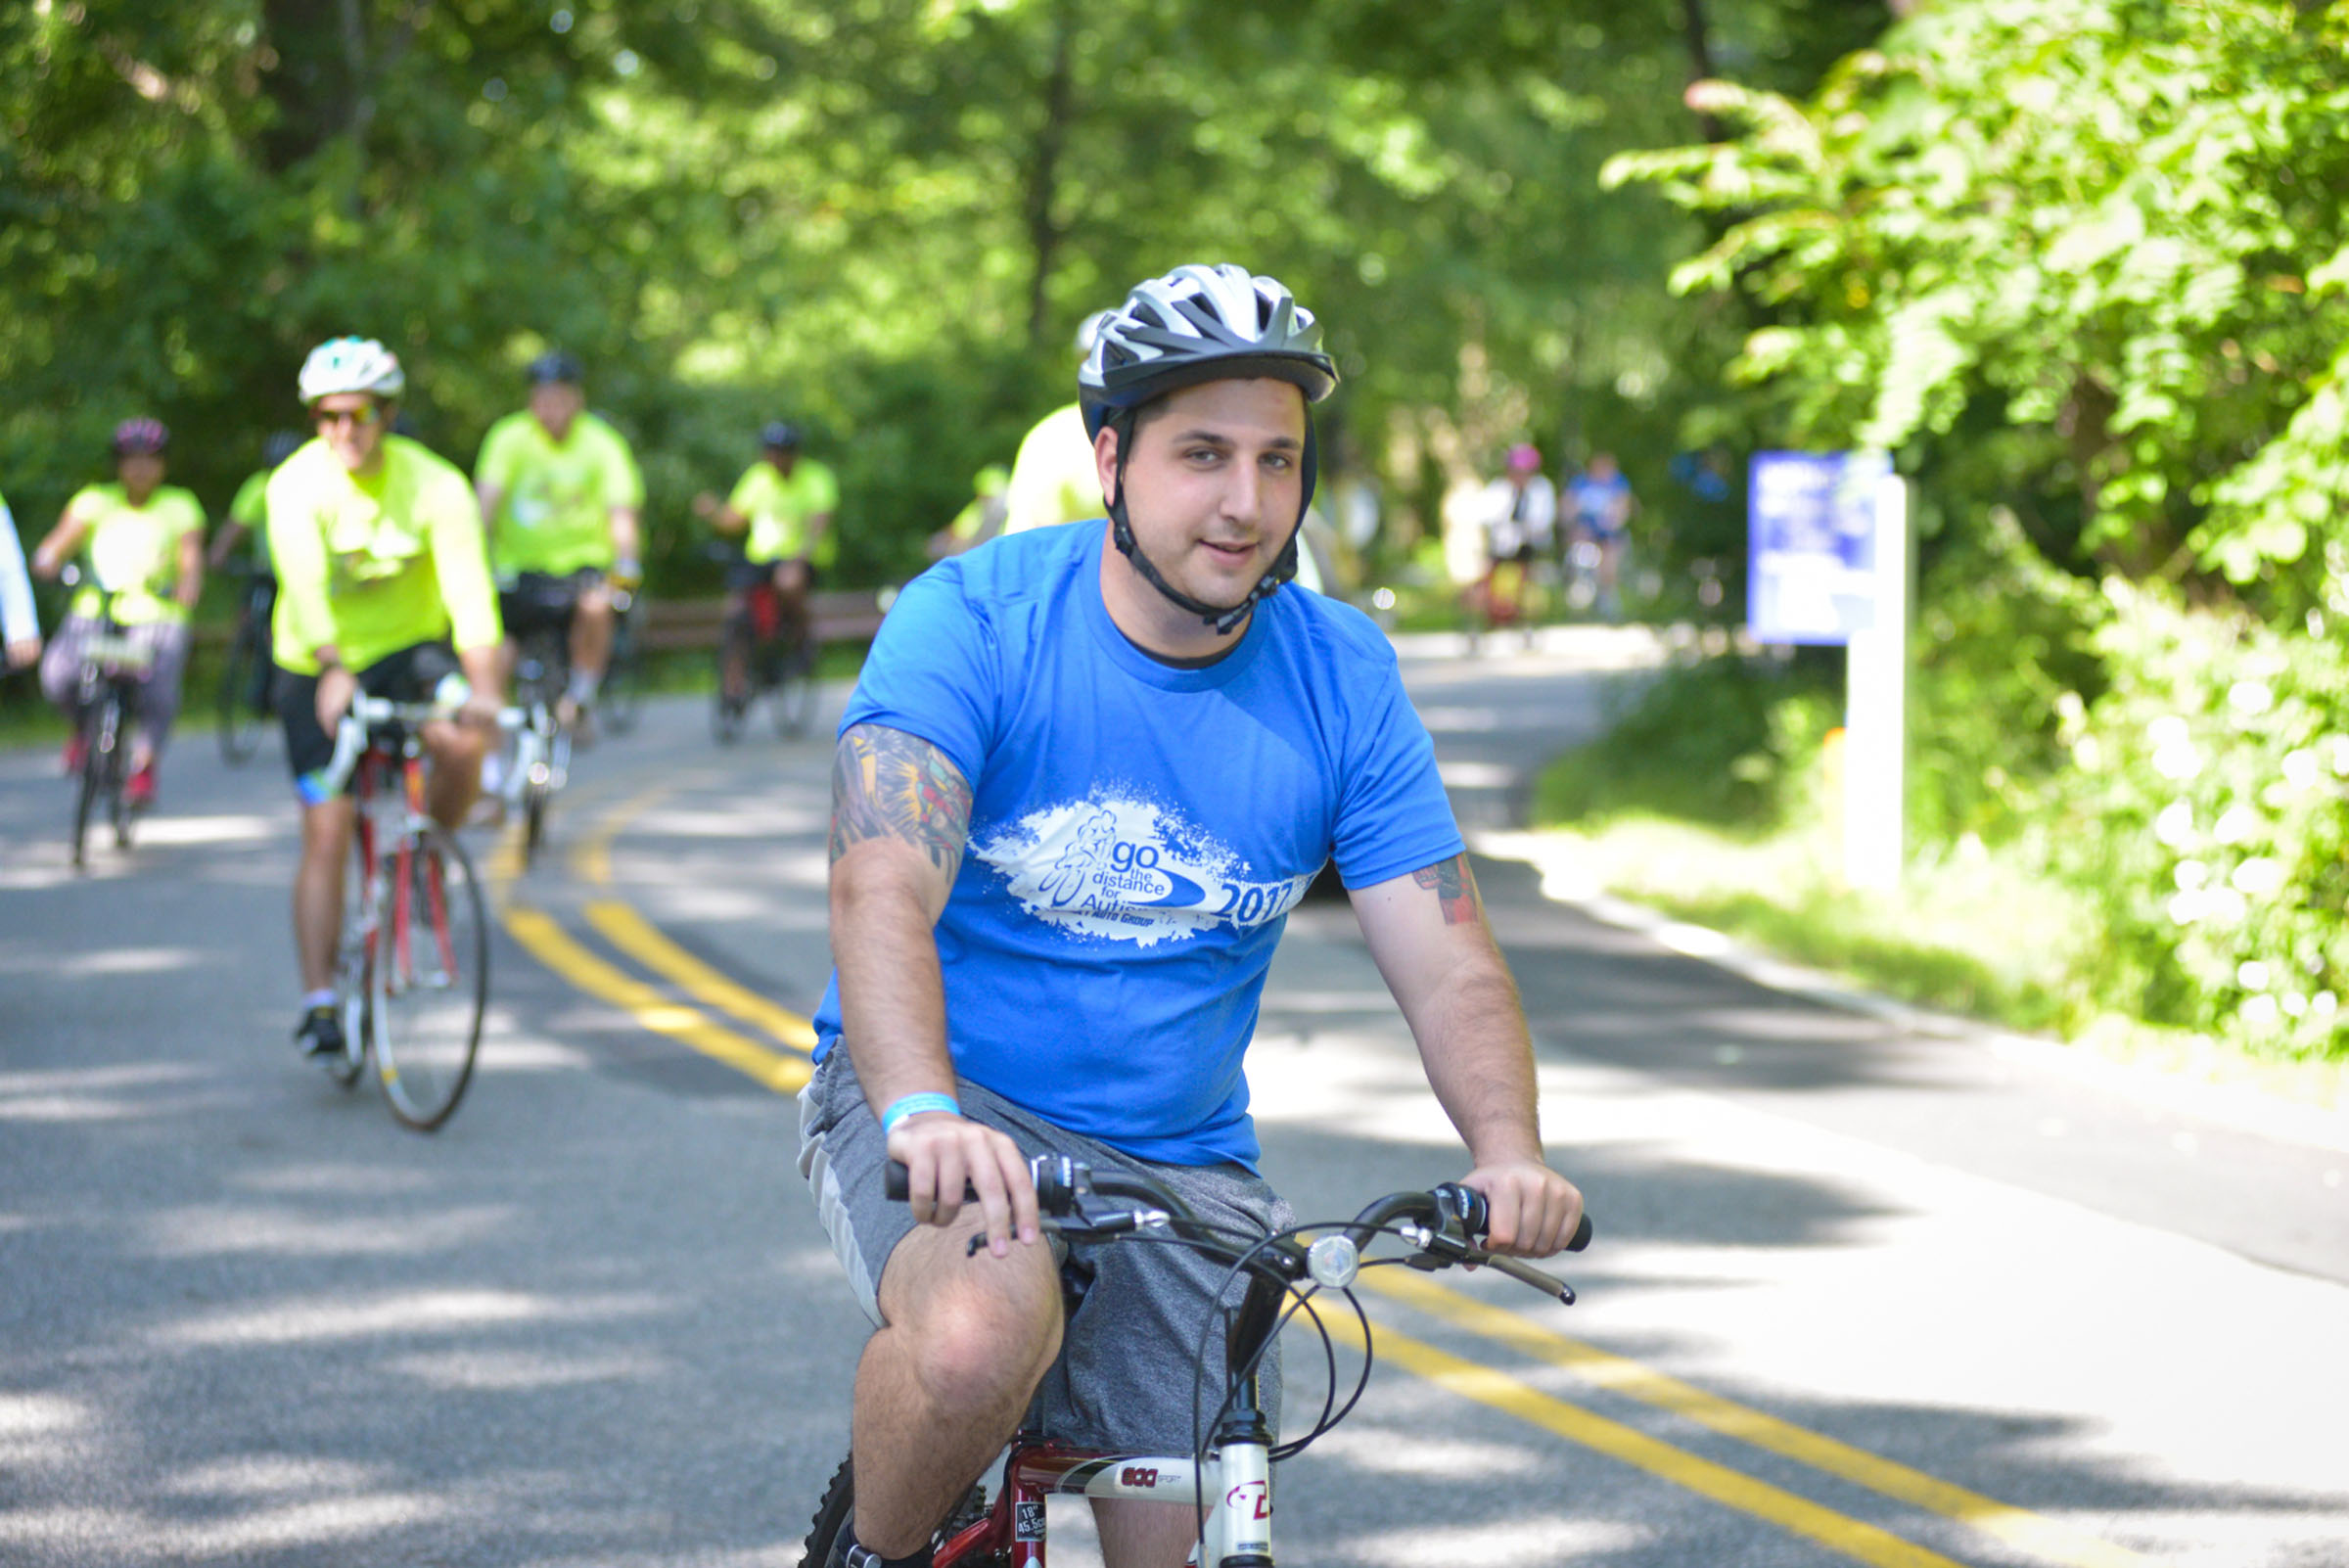 2017-06-04 GTD4A Charity Bike Ride - BCC - Paramus NJ-1951.jpg